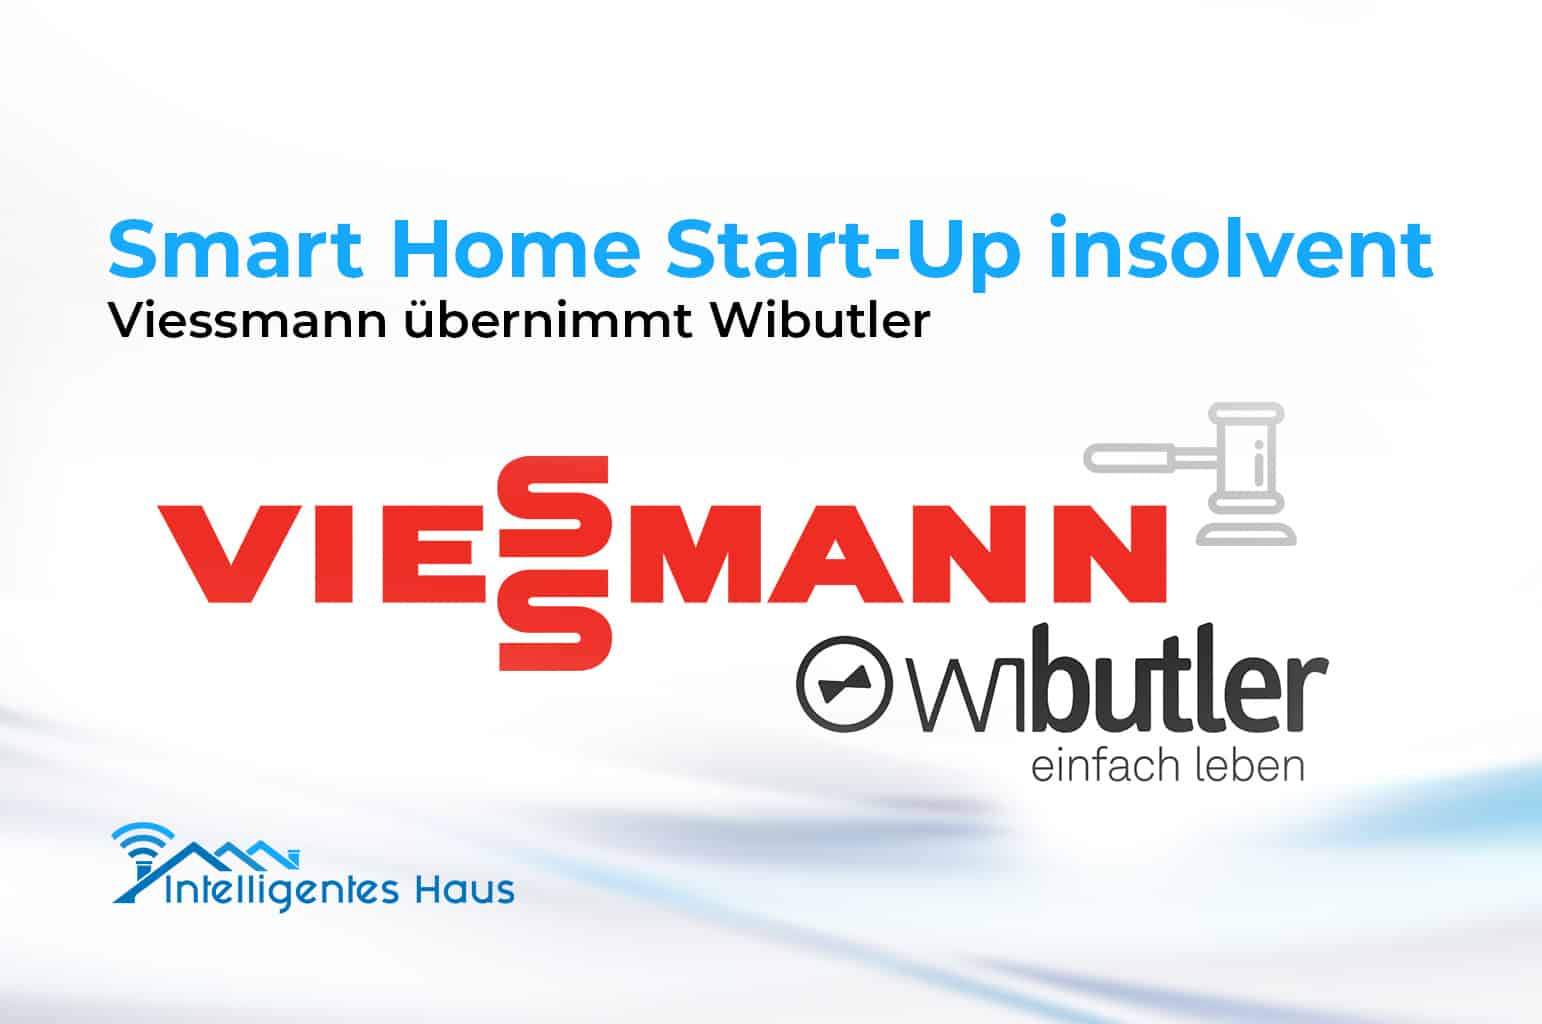 wibutler insolventes smart home start up von viessmann. Black Bedroom Furniture Sets. Home Design Ideas